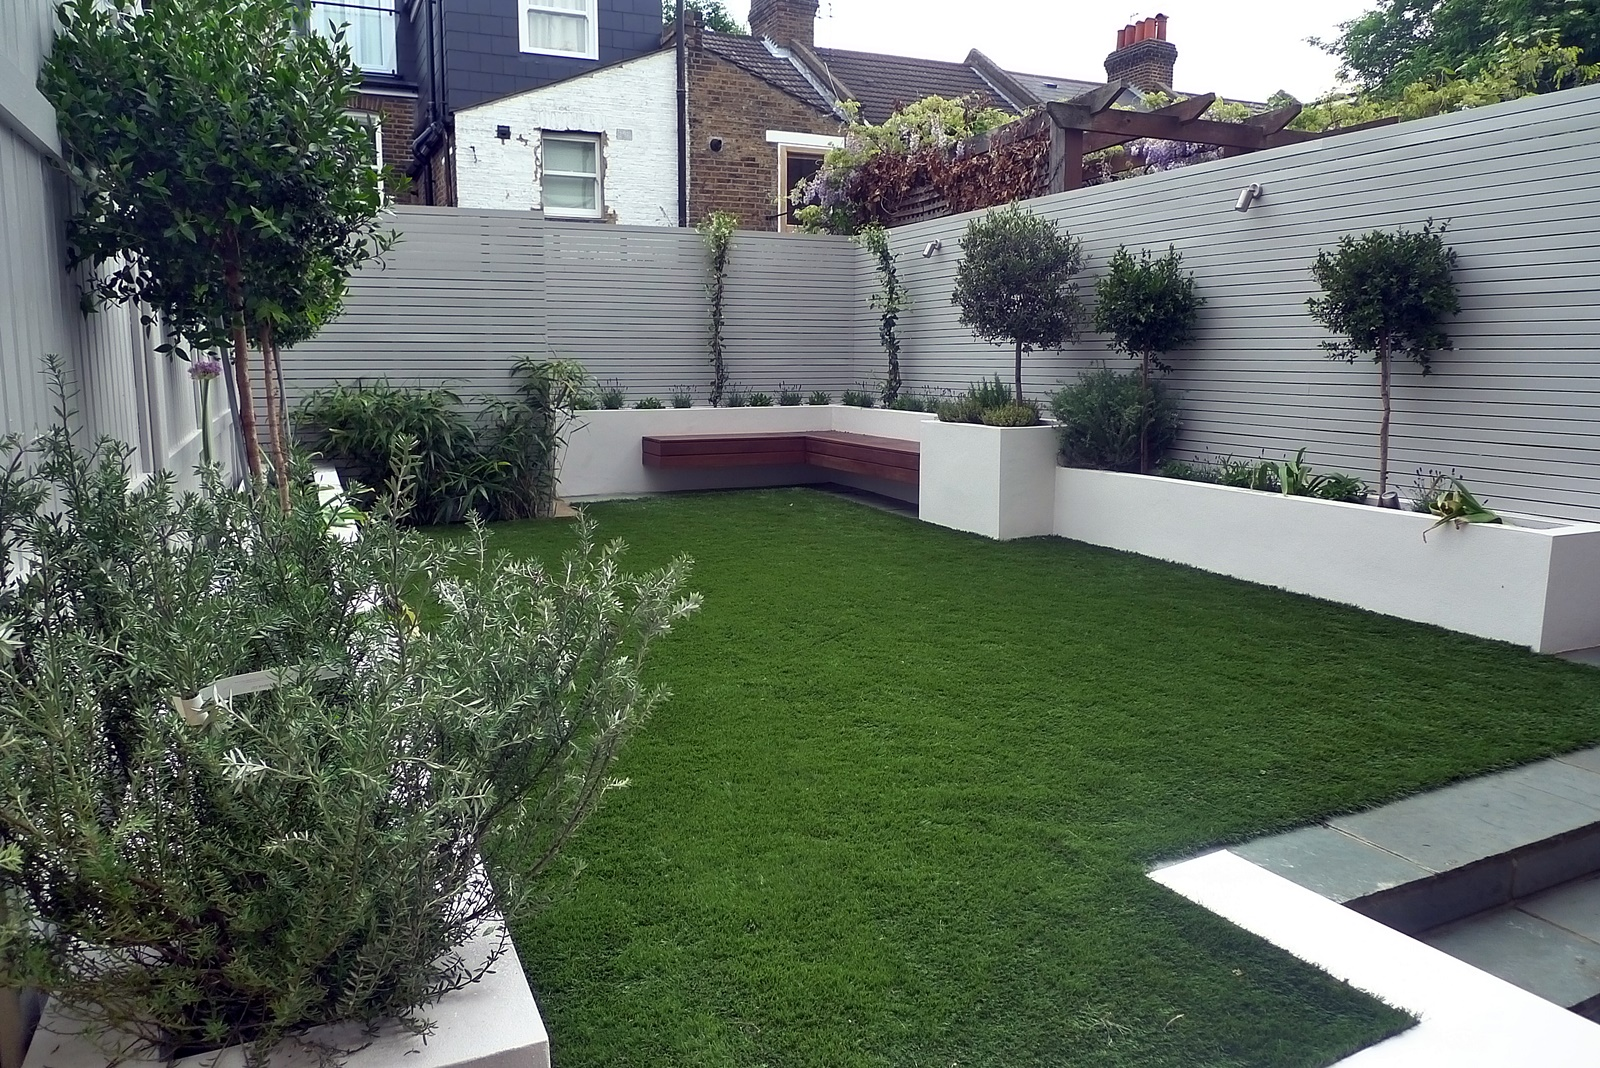 London garden blog london garden blog gardens from for Contemporary garden ideas